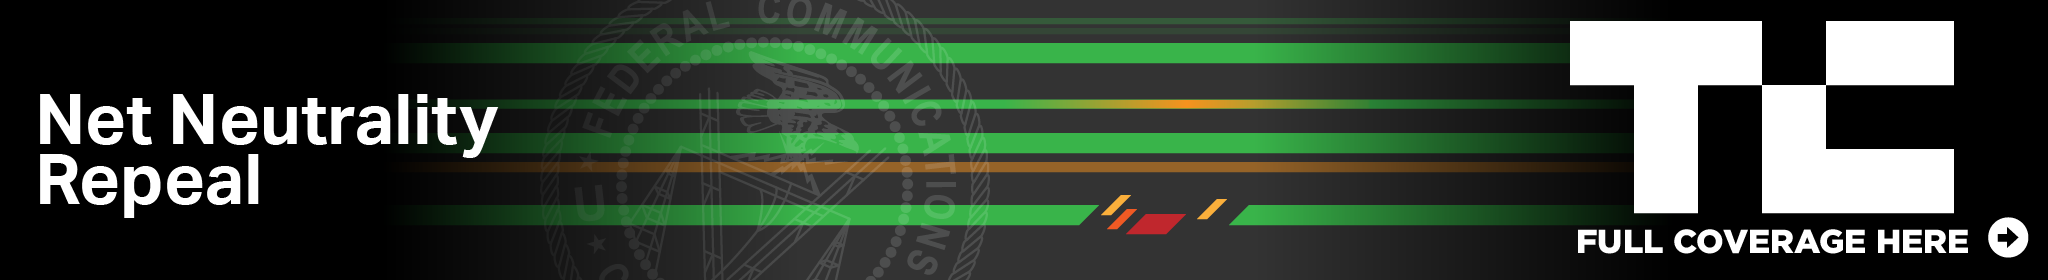 net neutrality repeal banner